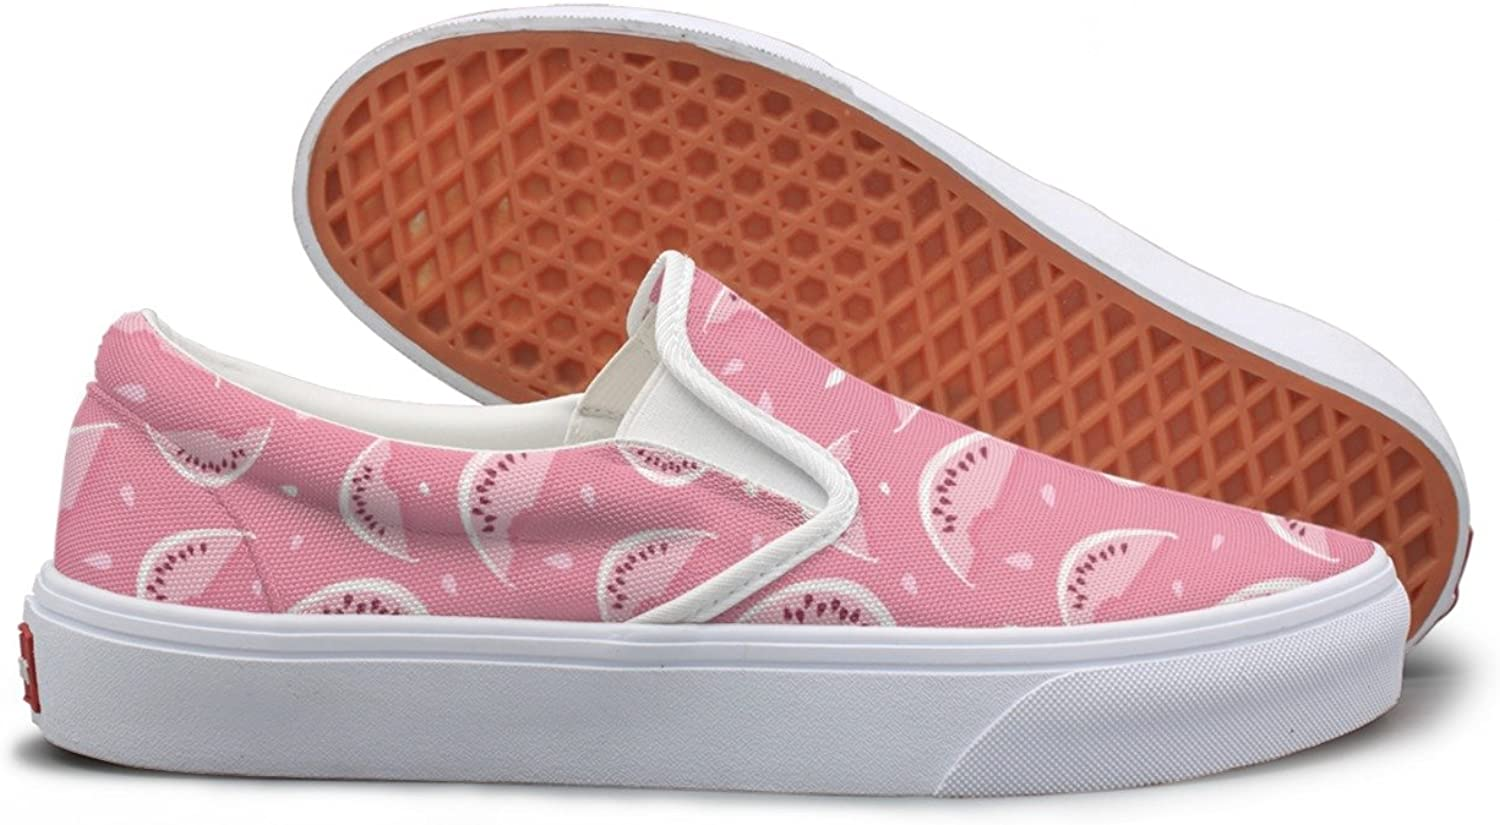 SEERTED Watermelon Nutrition with Seeds Womens Slip On Sneakers